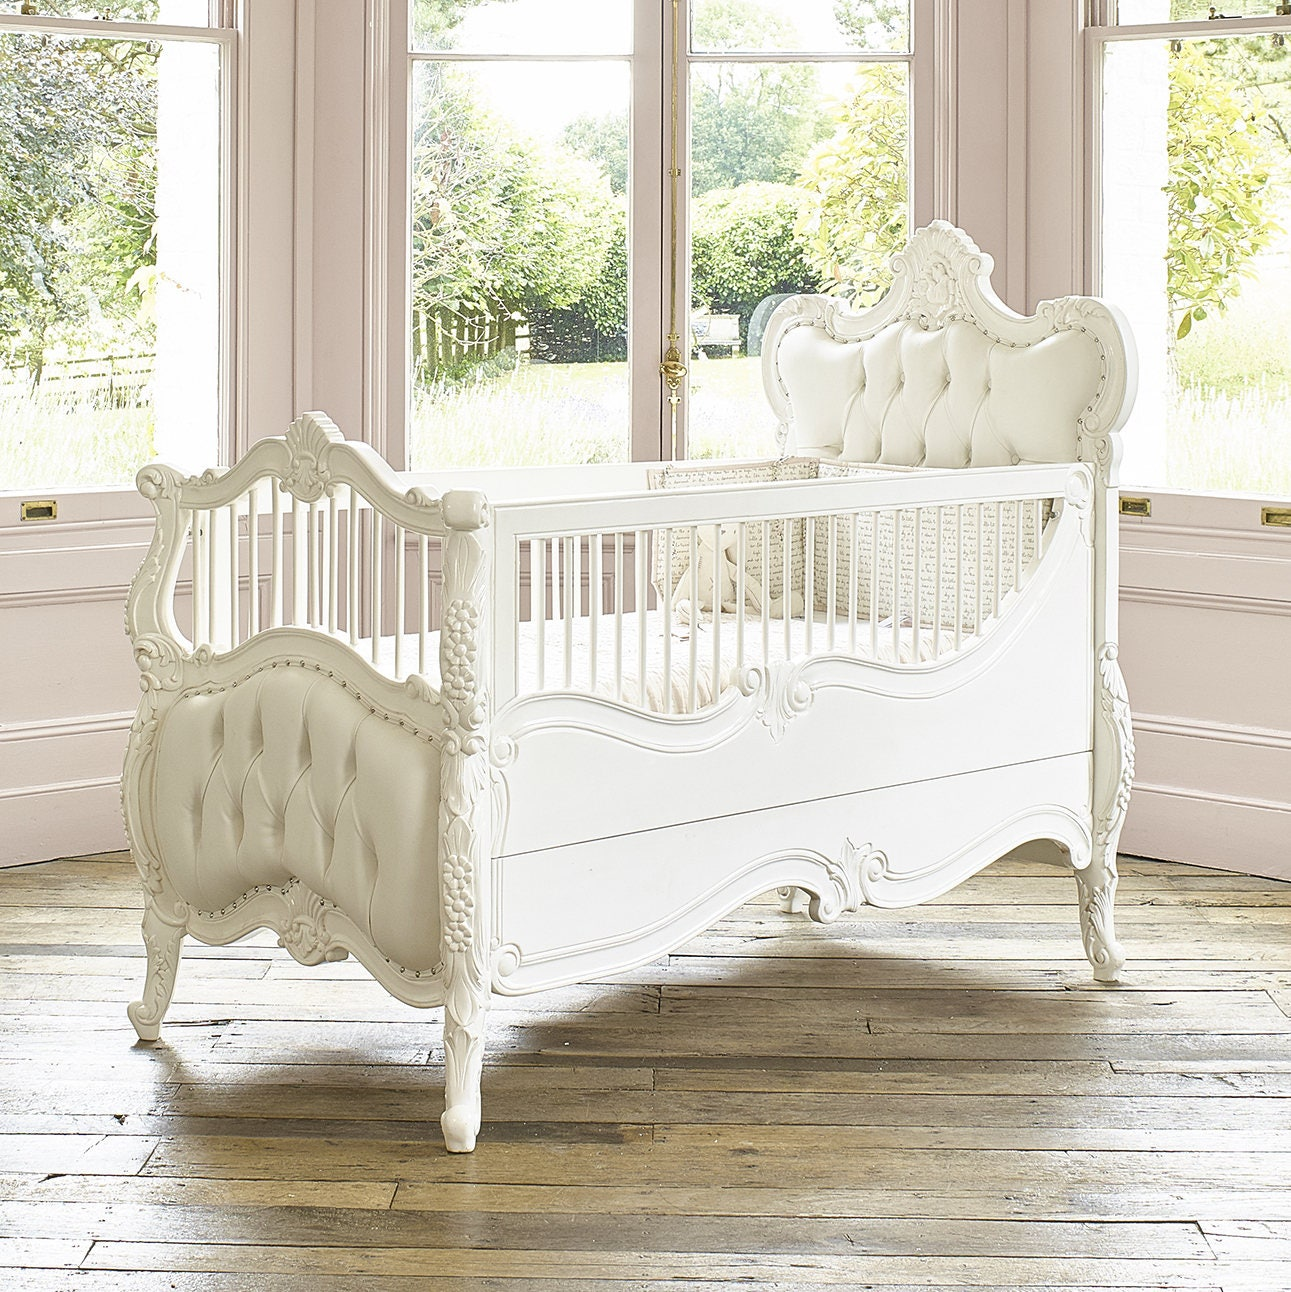 Bedroom Colour Design Blue Bedroom Chaise Chairs Bedroom Decor Ideas For Couples Newborn Baby Boy Bedroom Ideas: Listing For Mr And Mrs Carter